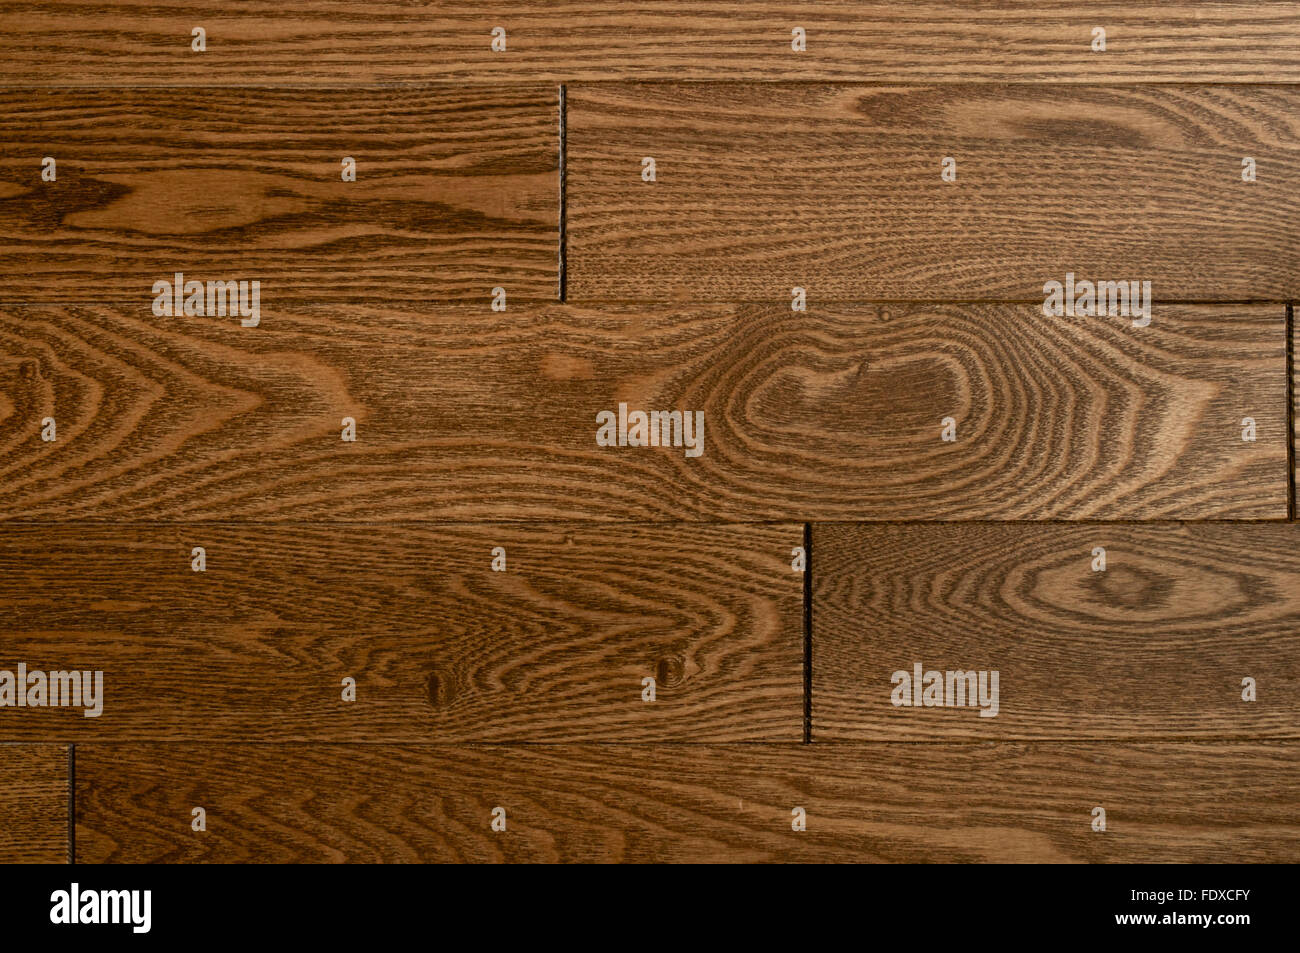 Wooden table background pattern - Stock Photo Wooden Light Brown Table Background With Clear Wooden Pattern